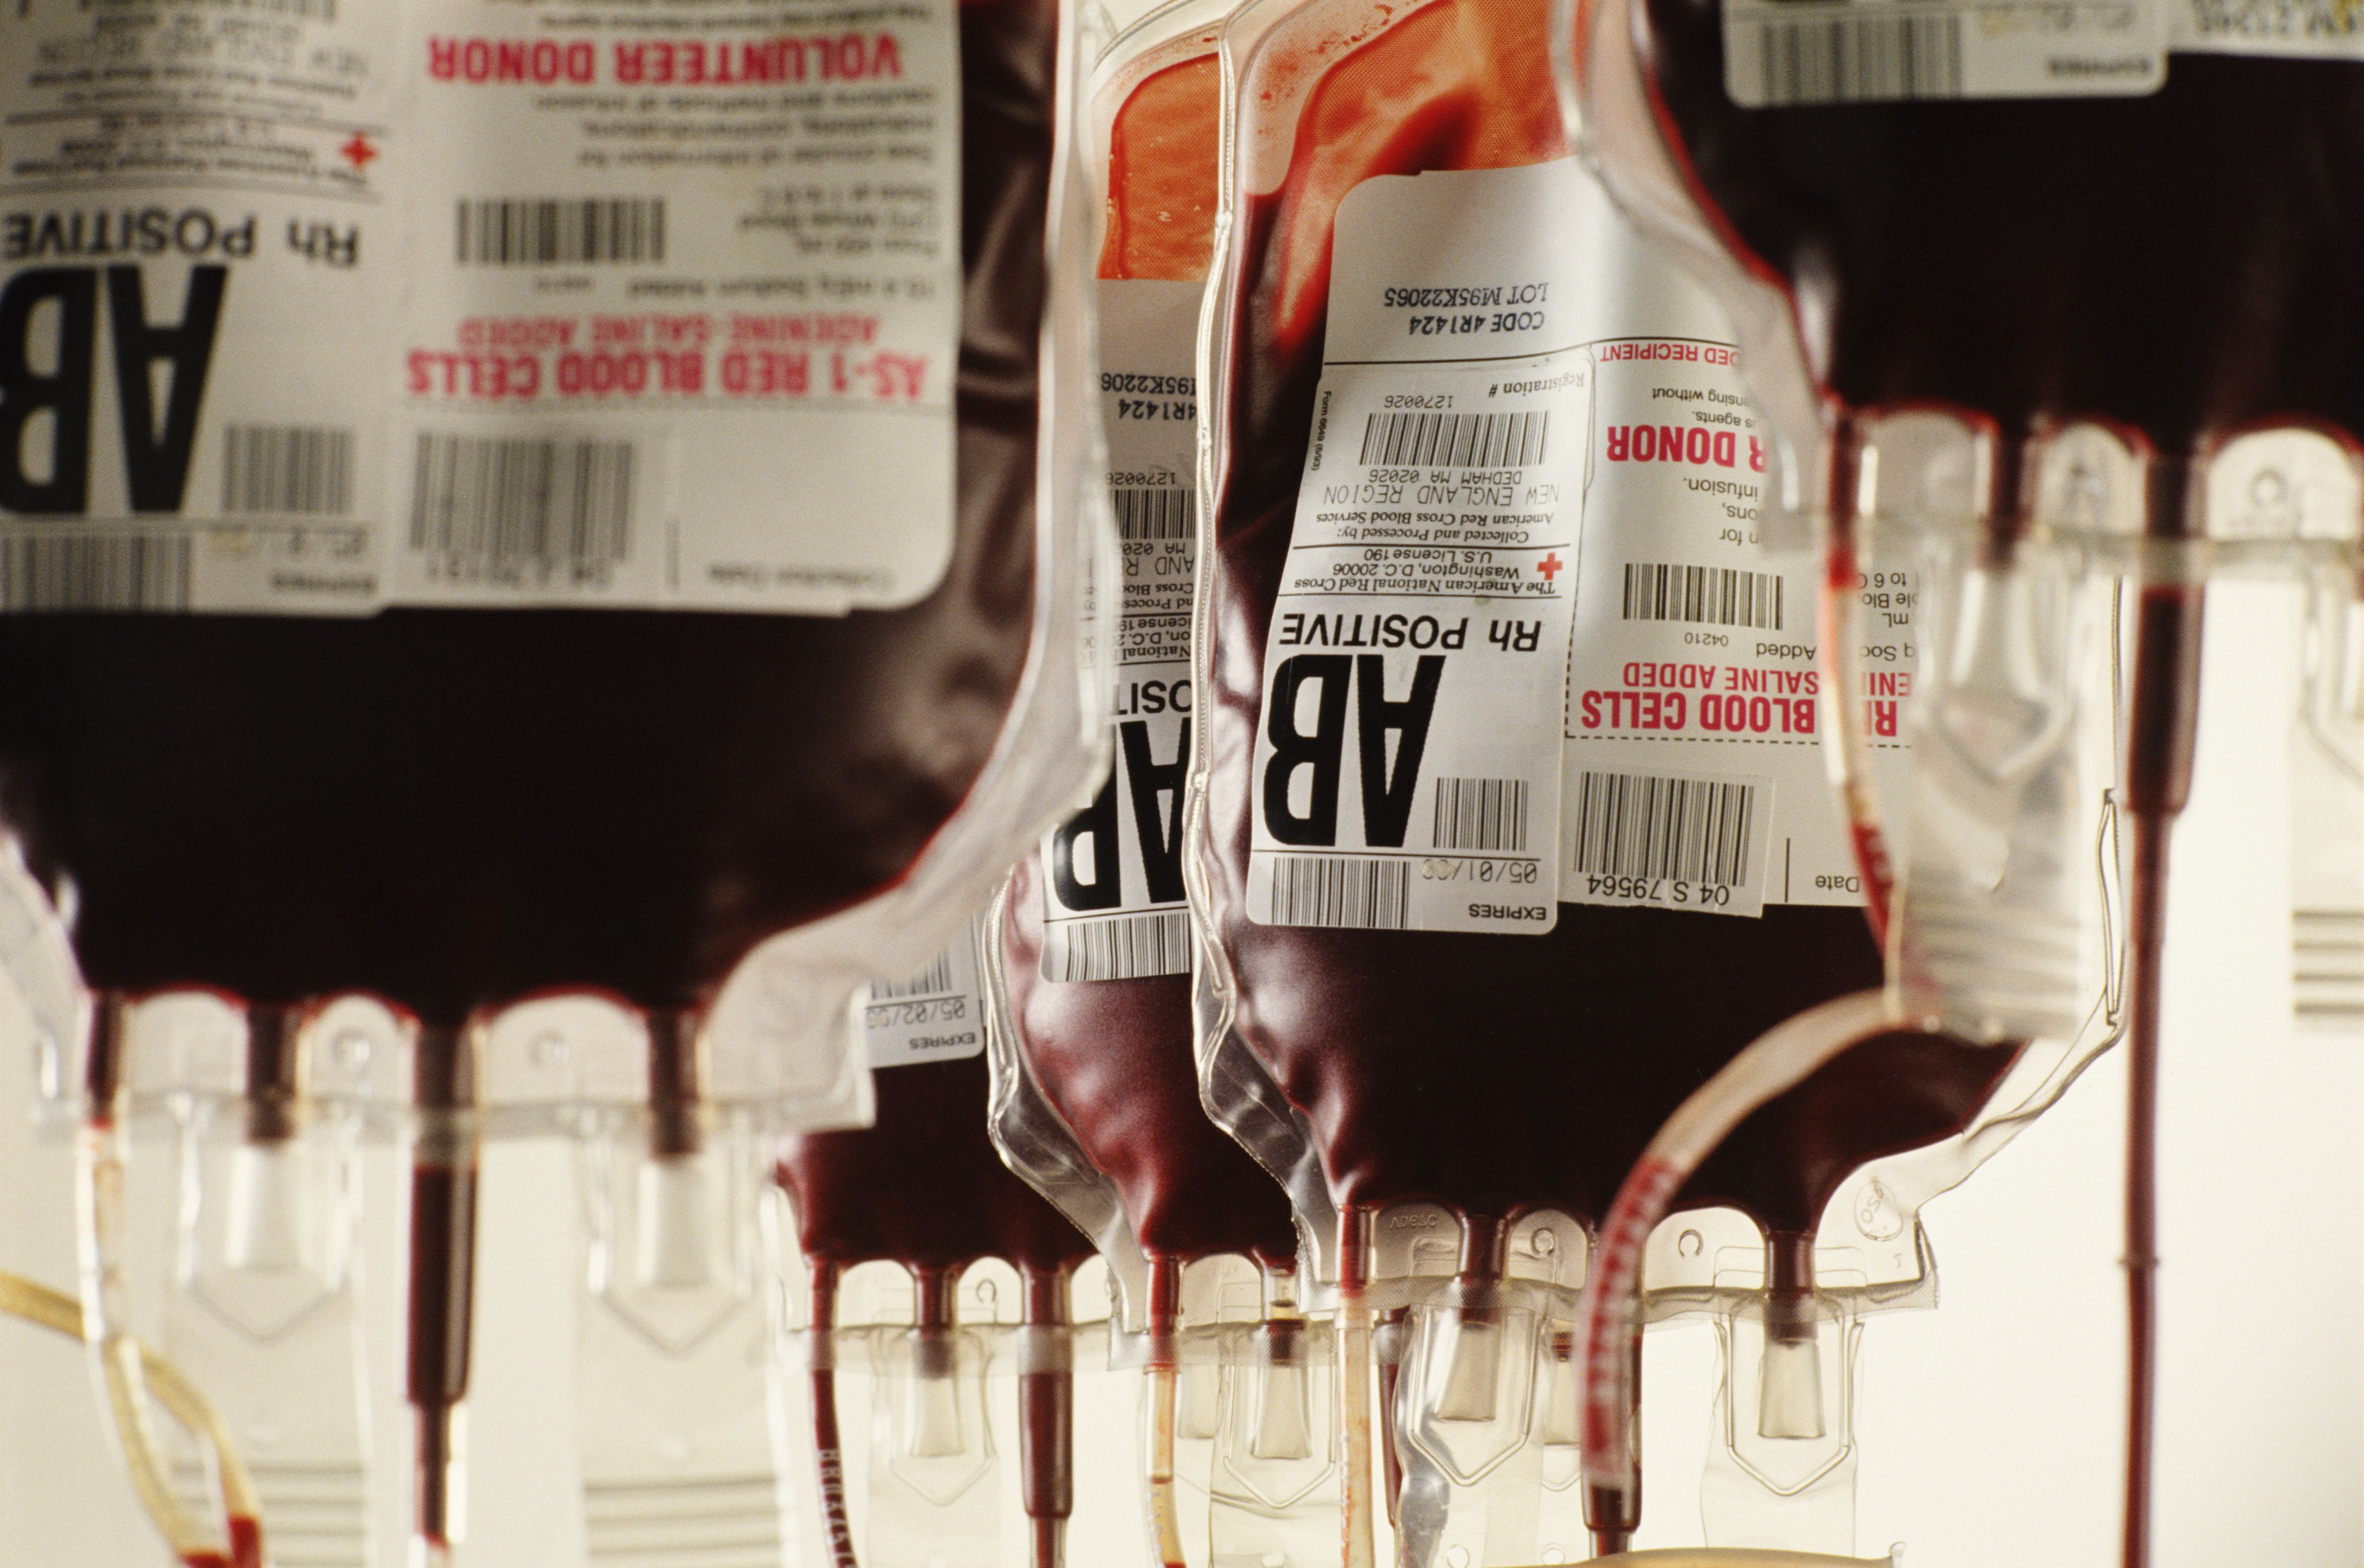 Bags of human blood